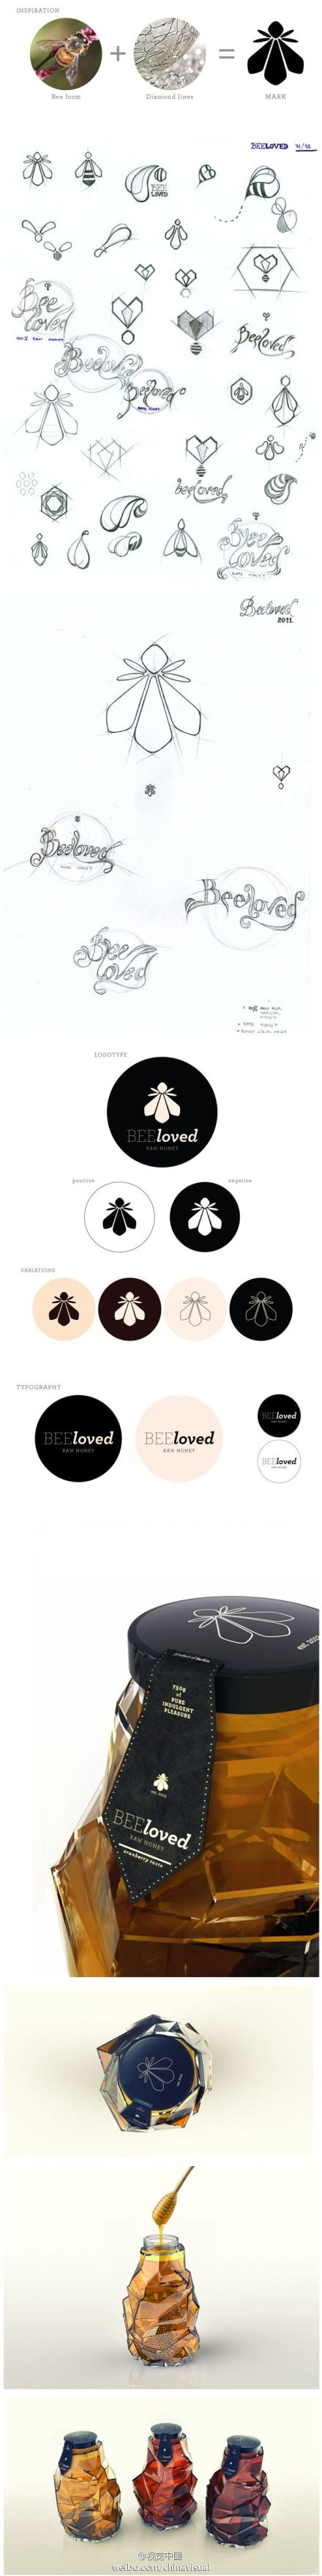 Process/Development of Beeloved / honey / logo / identity / branding / sketches / design / packaging / sketch